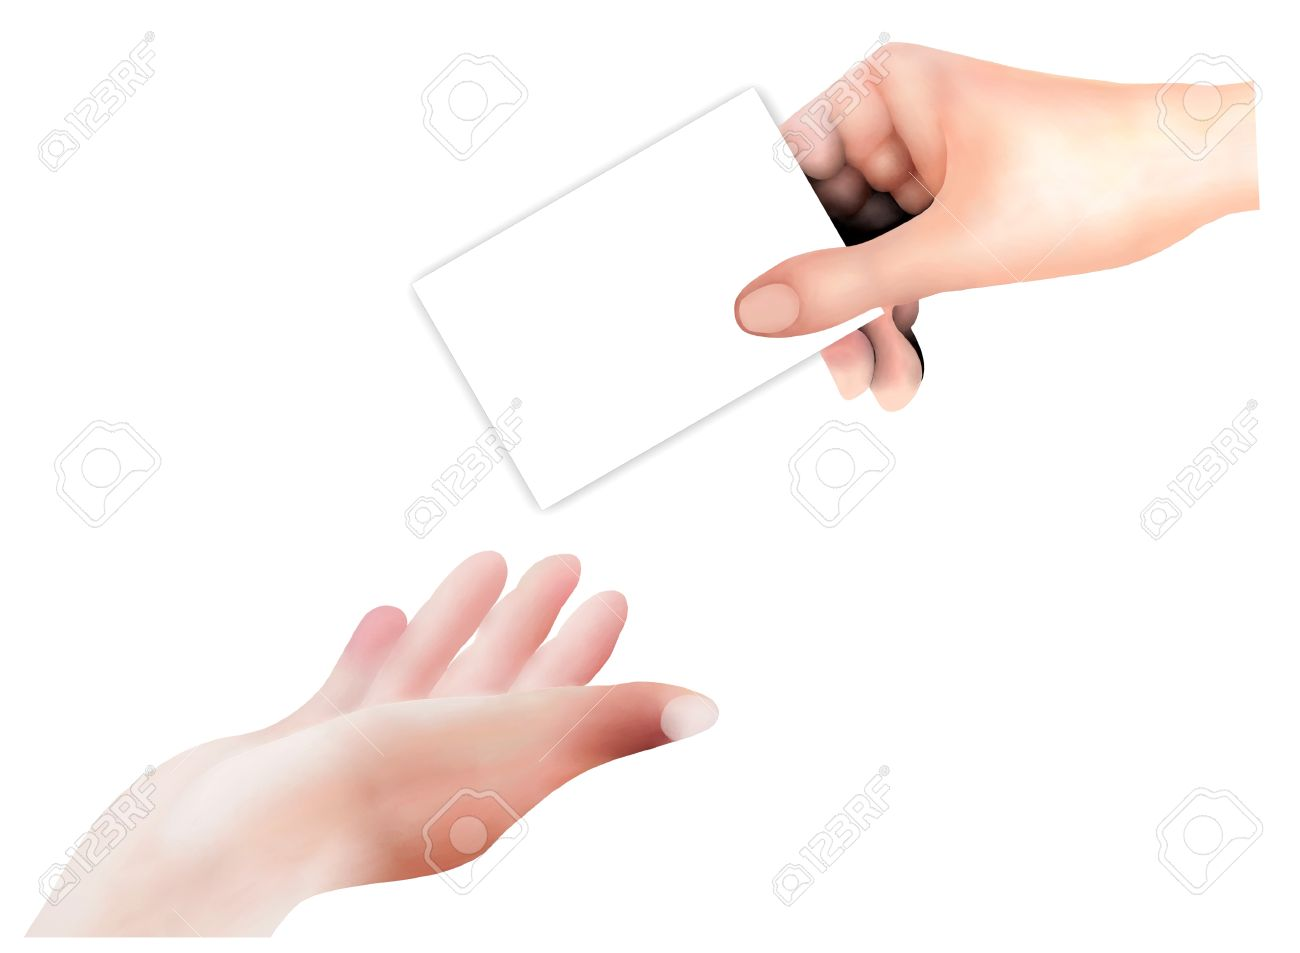 Hand Drawing, Person Open A Hand in The Air Receive An Empty Card From A Business Man Isolated on White Background Stock Photo - 16010906